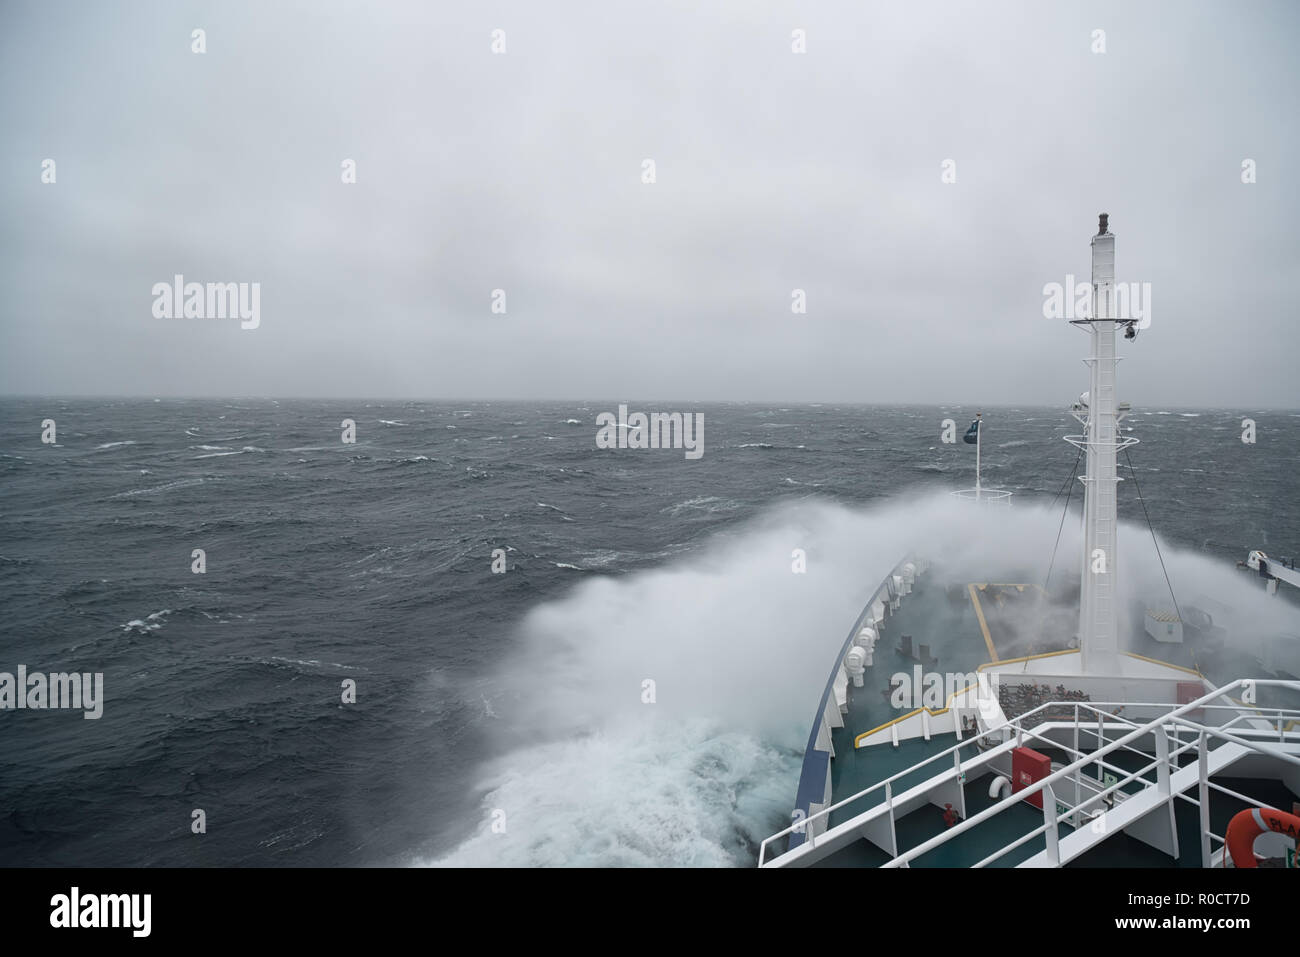 Ship cruising in storm and heavy seas crossing the Denmark Strait between Greenland and Iceland. - Stock Image